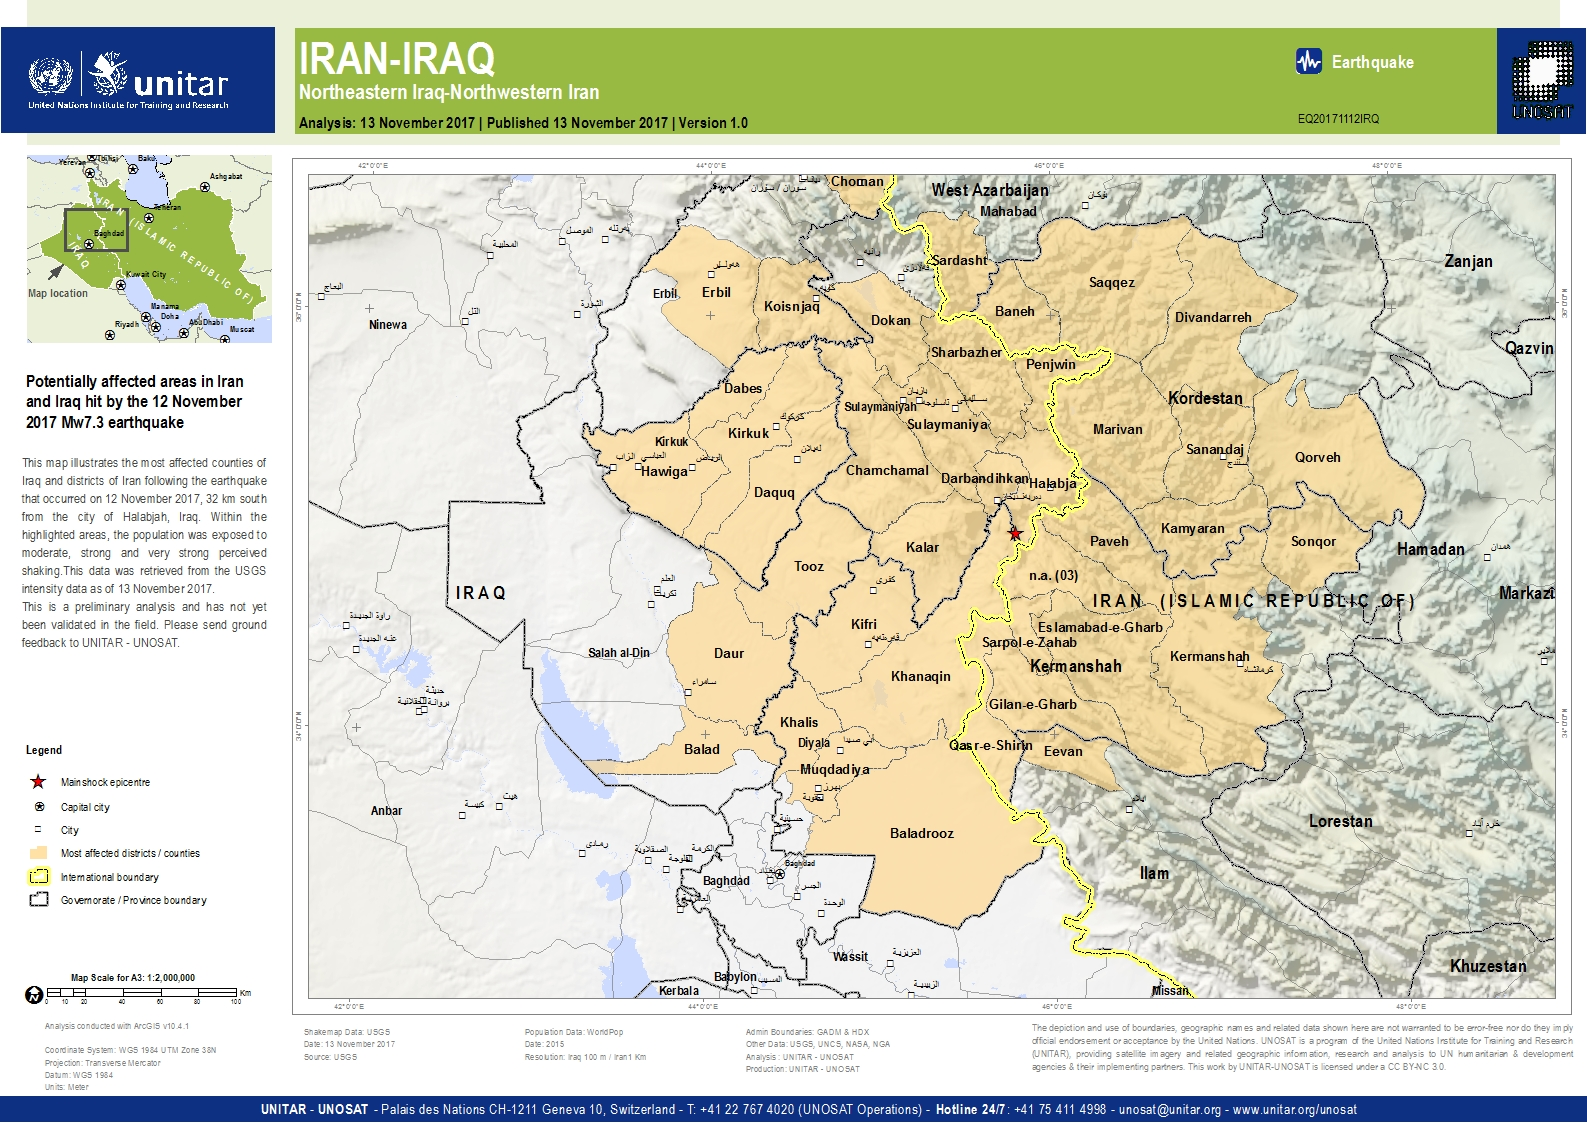 Halabjah earthquake m 73 iraniraq of 12 november 2017 population halabjah earthquake m 73 iraniraq of 12 november 2017 population exposure analysis unitar gumiabroncs Image collections